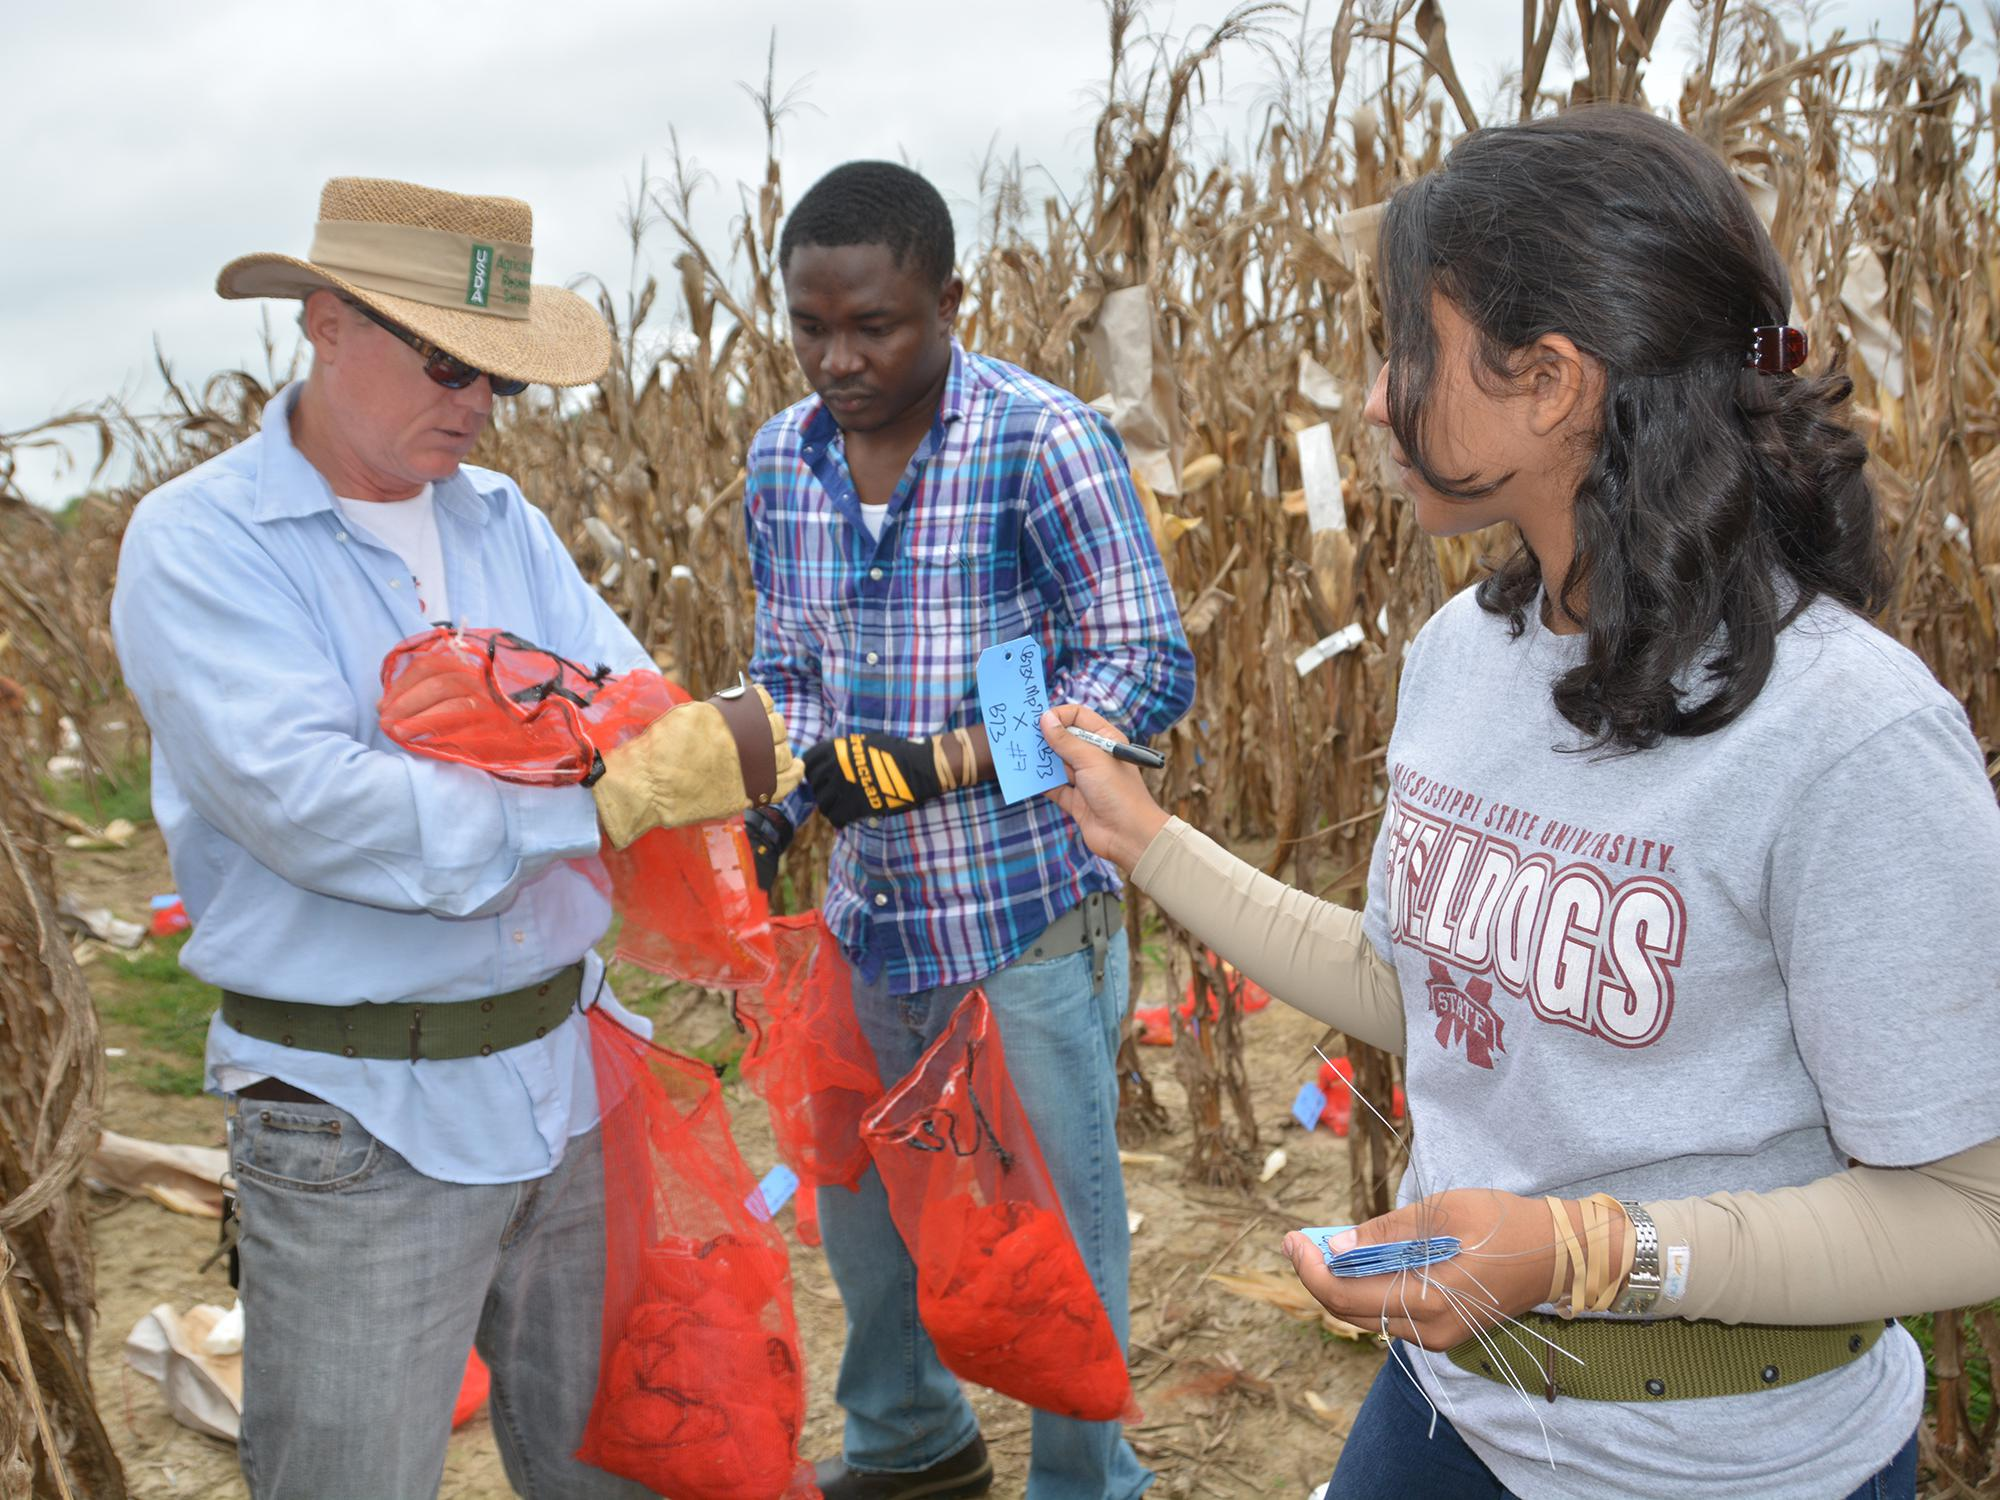 Jack Haynes, a biological science technician with the U.S. Department of Agriculture's Agricultural Research Service, left, works with Mississippi State University graduate students Felix Ogunola of Nigeria and Dafne Oliveira of Brazil as they collect corn samples from an aflatoxin test plot on Sept. 12, 2014, at the Rodney Foil Plant Science Research Center near Starkville, Mississippi. (Photo by MSU Ag Communications/Linda Breazeale)